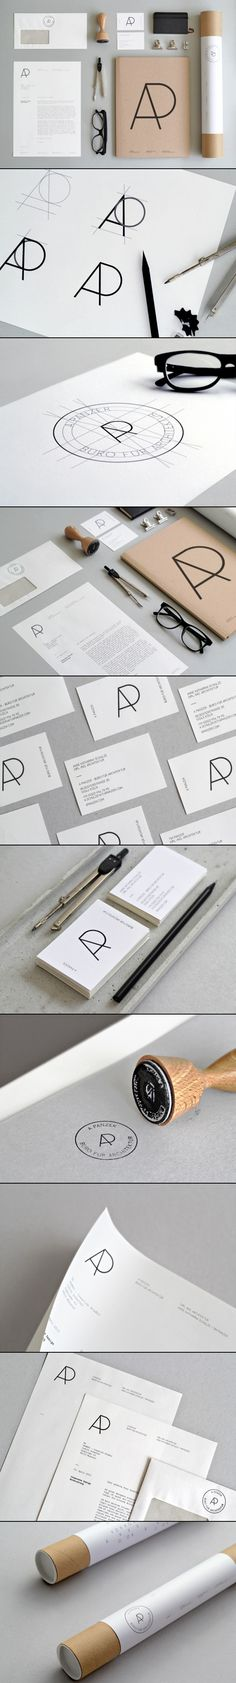 Creative Logo, Ap, Identity, and Branding image ideas & inspiration on Designspiration Corporate Design, Brand Identity Design, Graphic Design Typography, Corporate Identity, Visual Identity, Brand Design, Design Corporativo, Paper Design, Design Logo